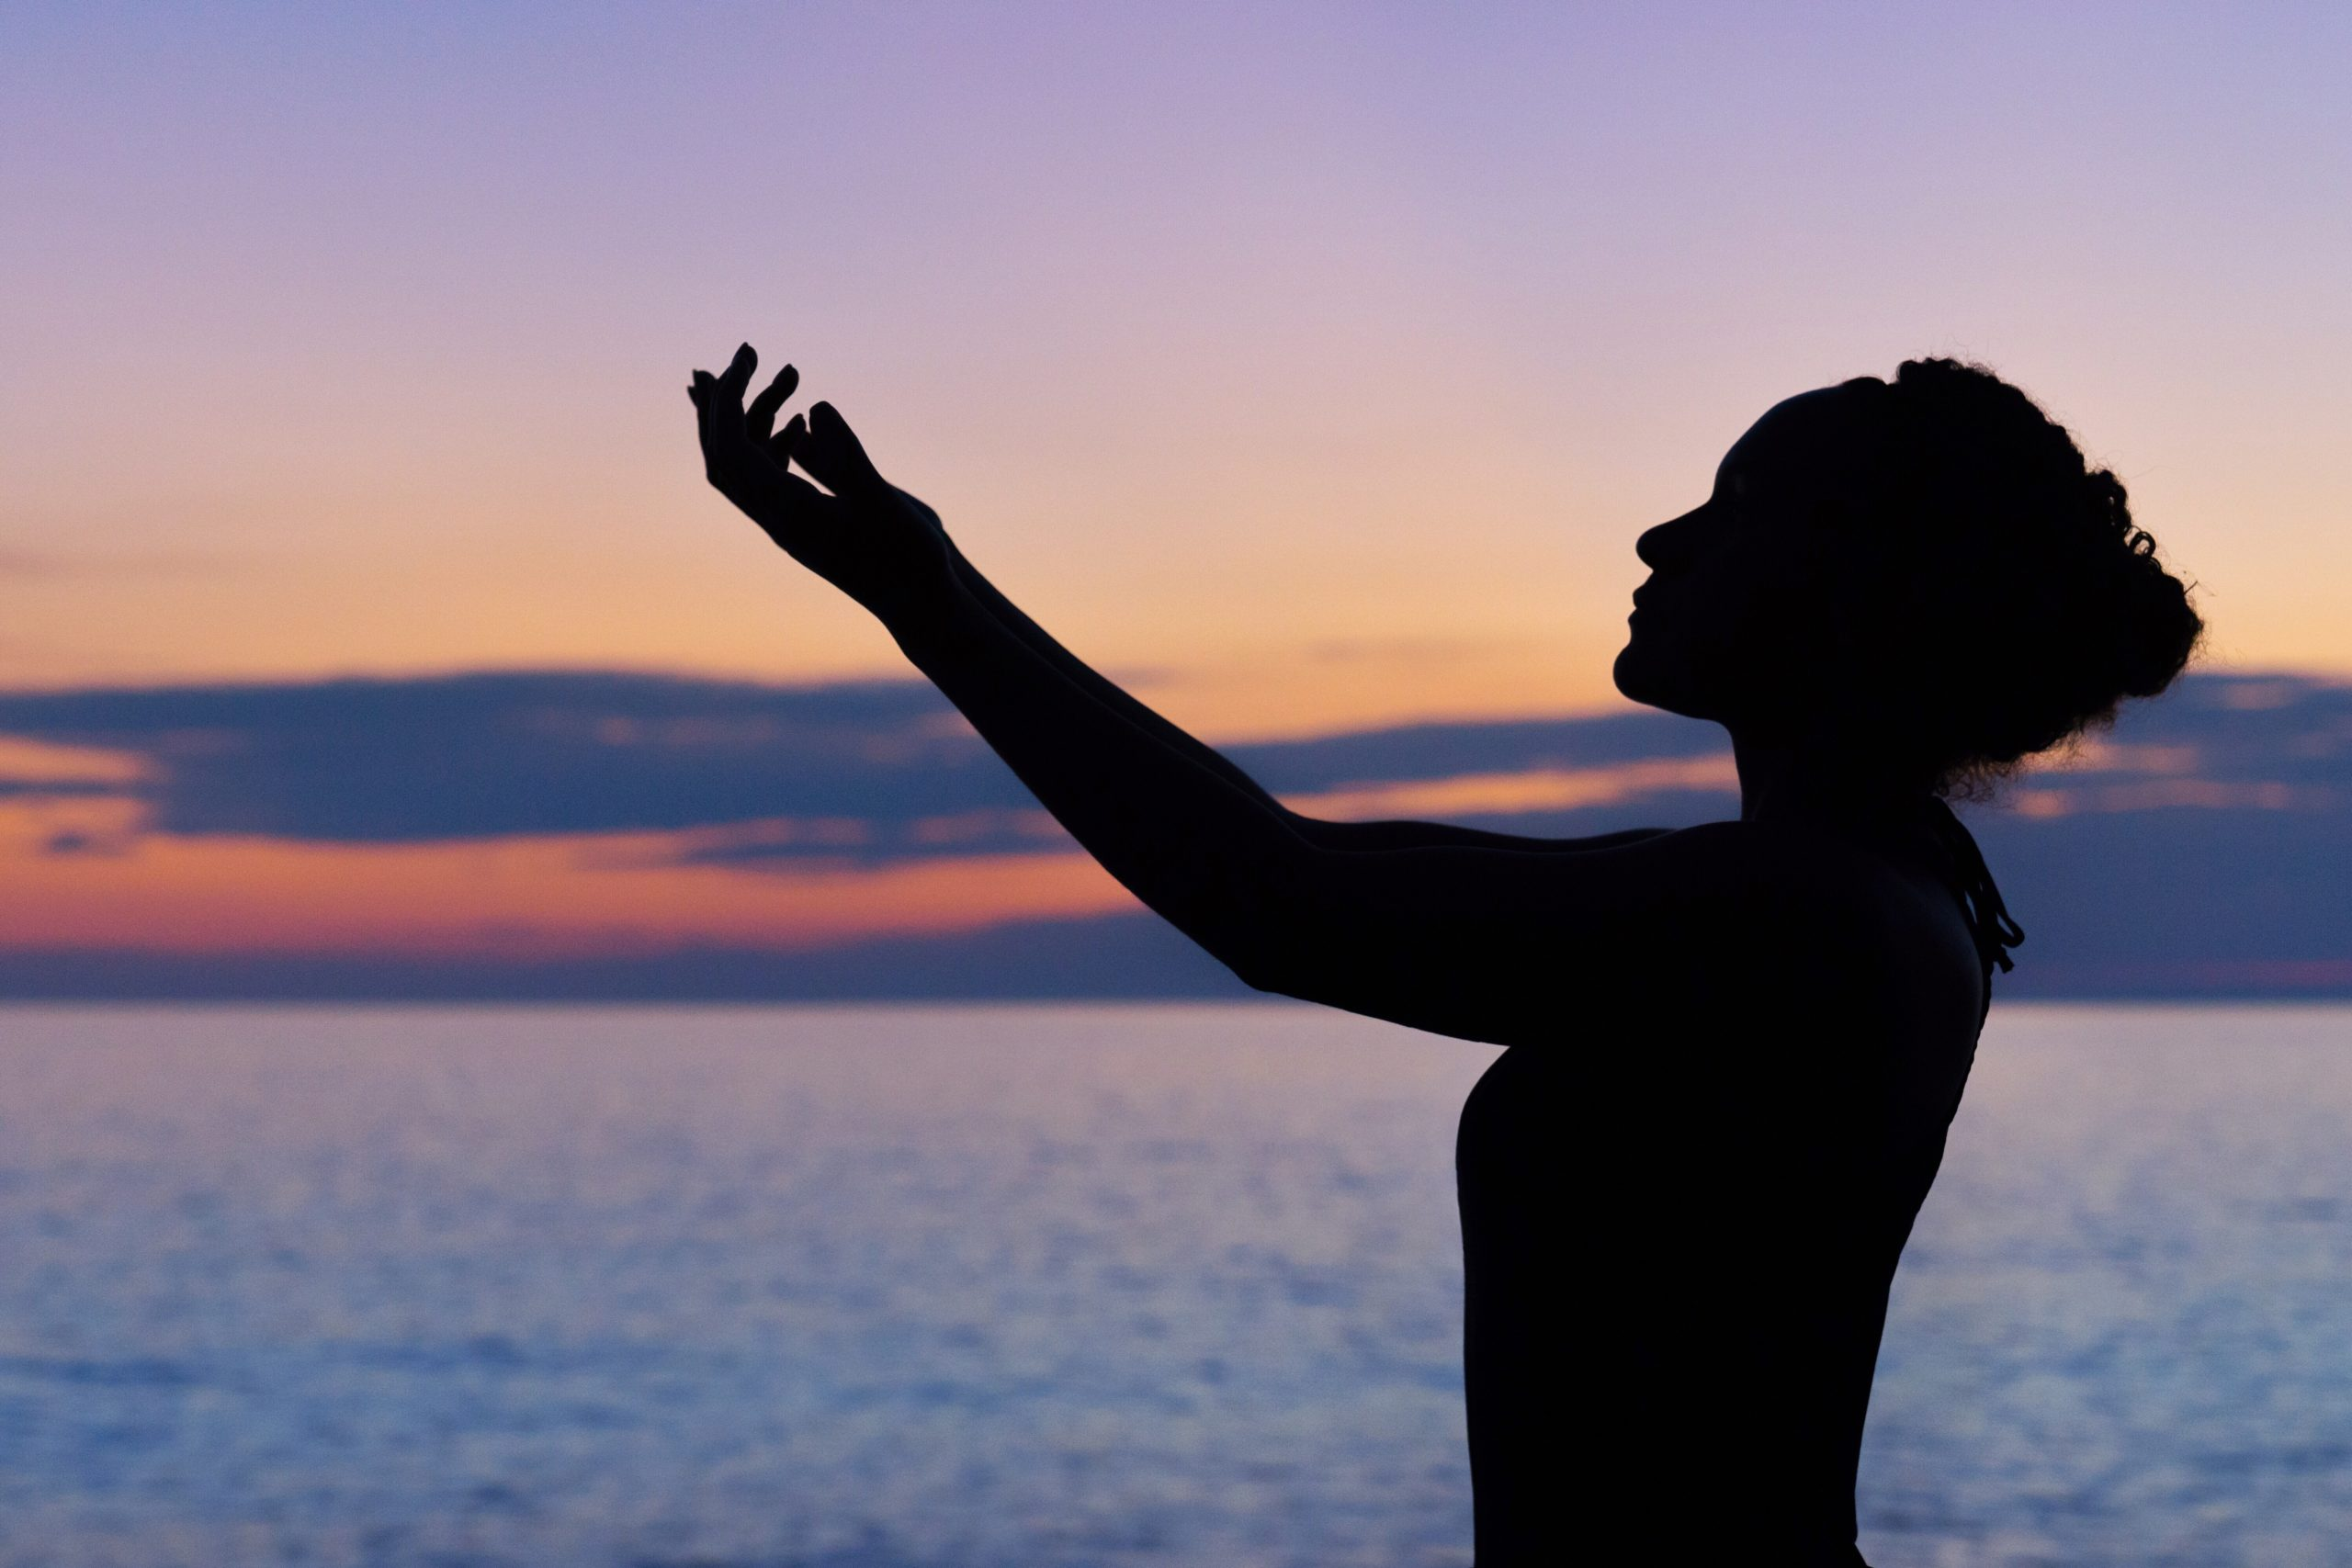 Silhouette of a woman with raised arms